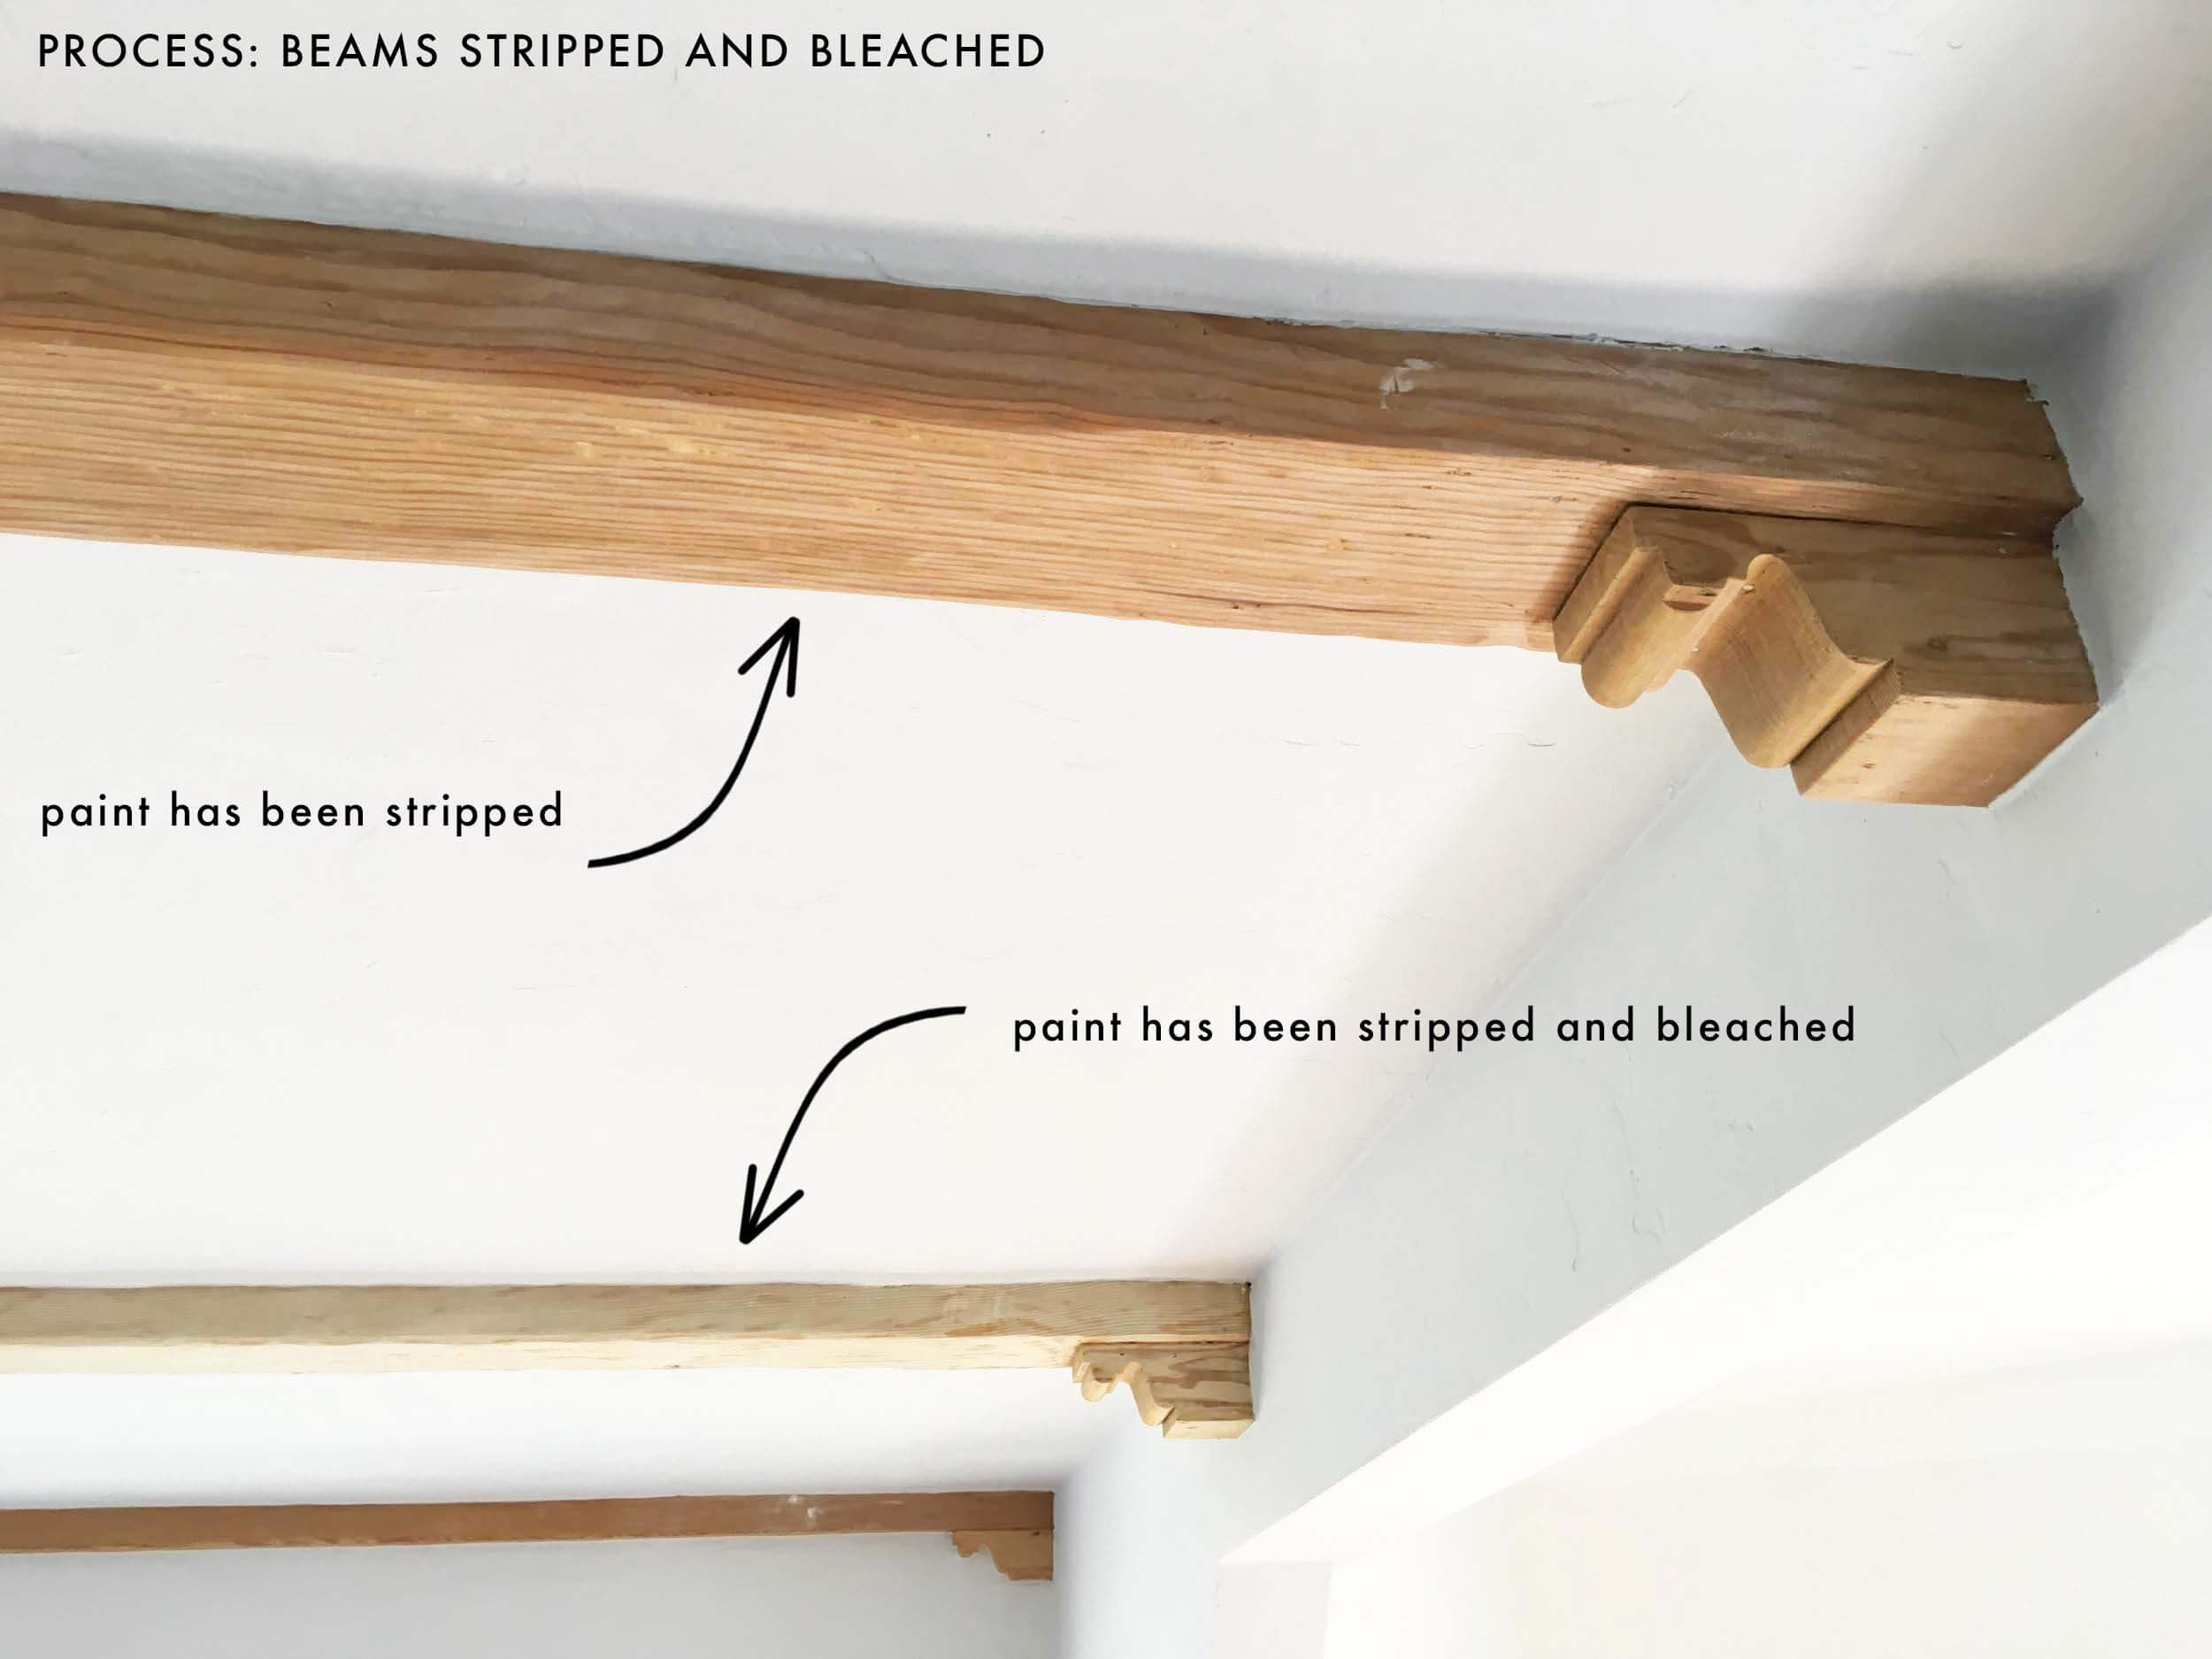 how much should it cost to refinish hardwood floors of how we refinished our wood beams emily henderson for emily henderson living room wood naturally refinishing beams process new 1